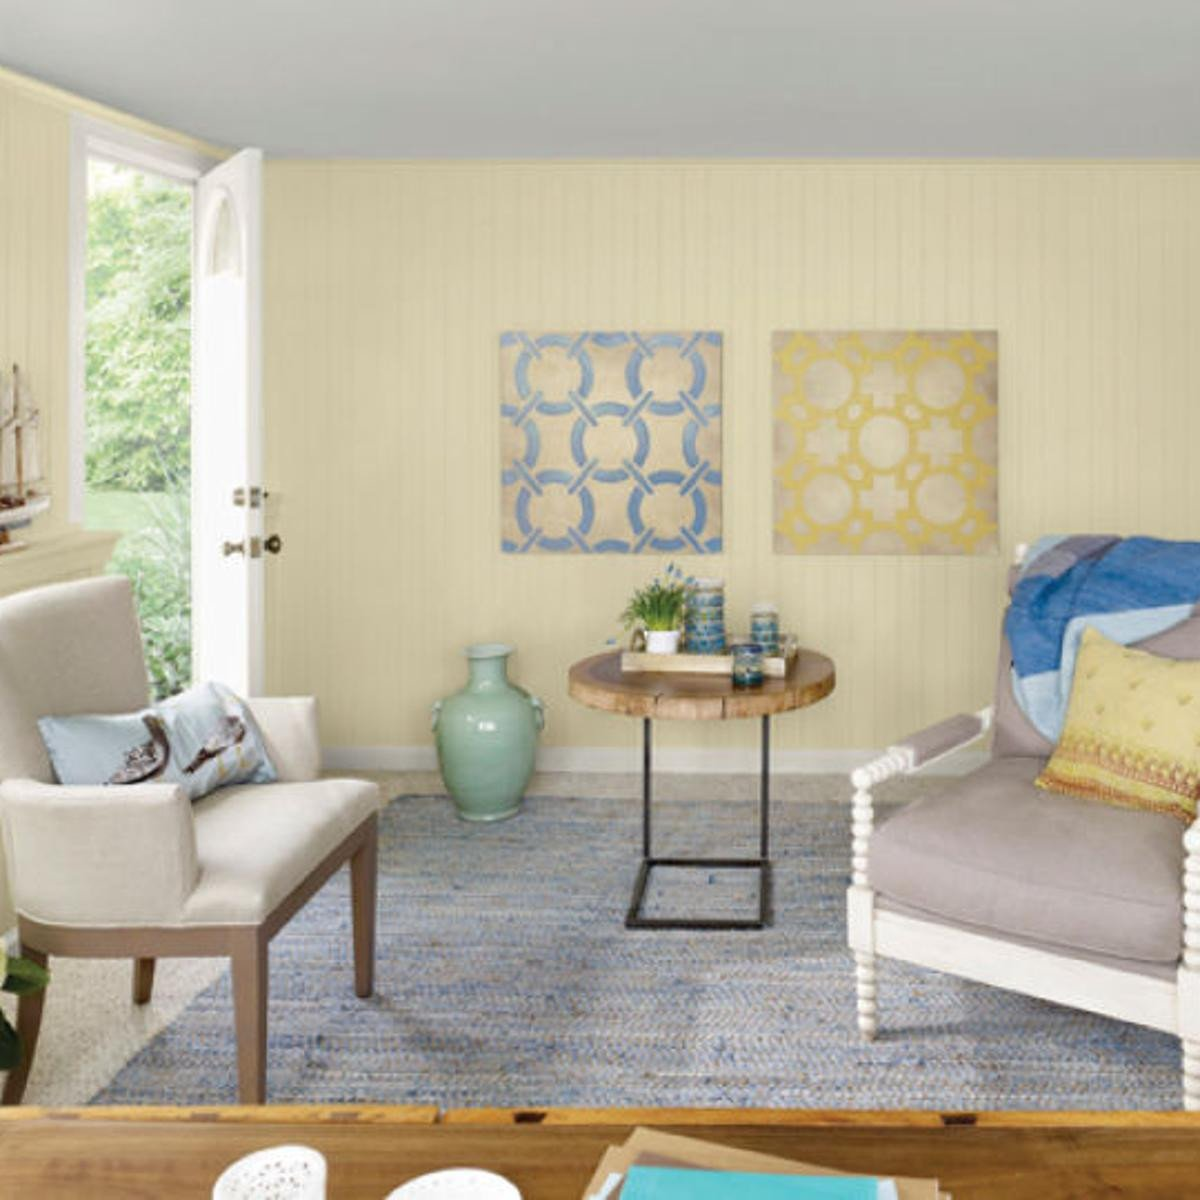 Lavender and Gray Bedroom Best Of Chill Out sorbet Colors soothing & Cooling for Summer